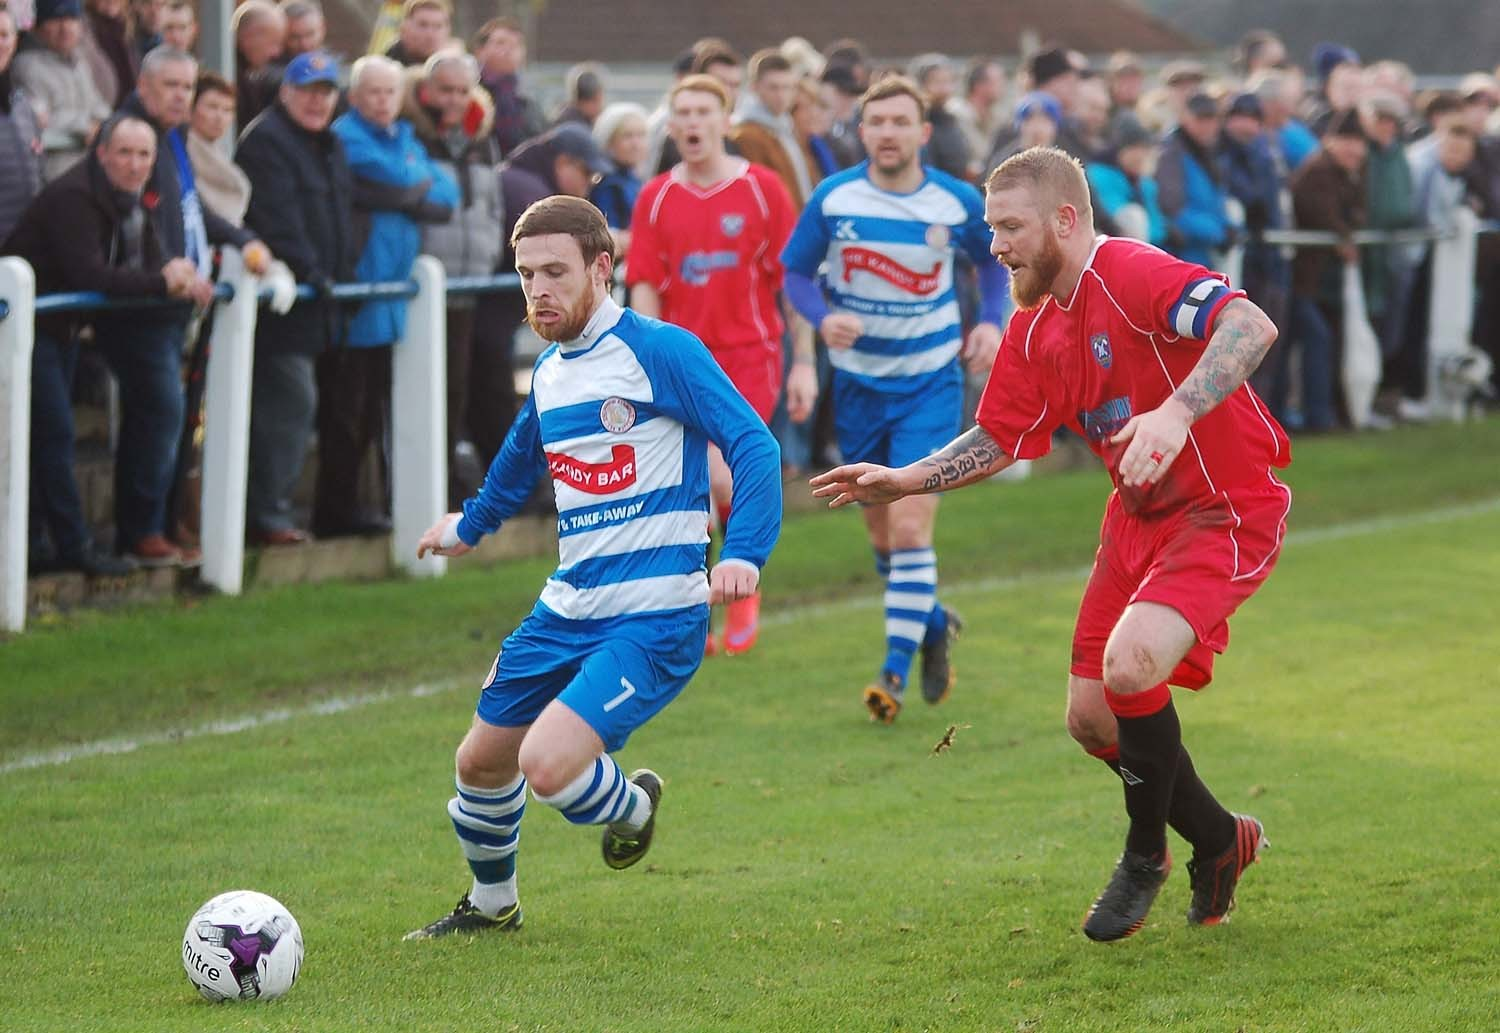 DOUBLE HERO: Carlo Monti, pictured left in action against Irvine Meadow in a previous match, scored both Buffs' goals.